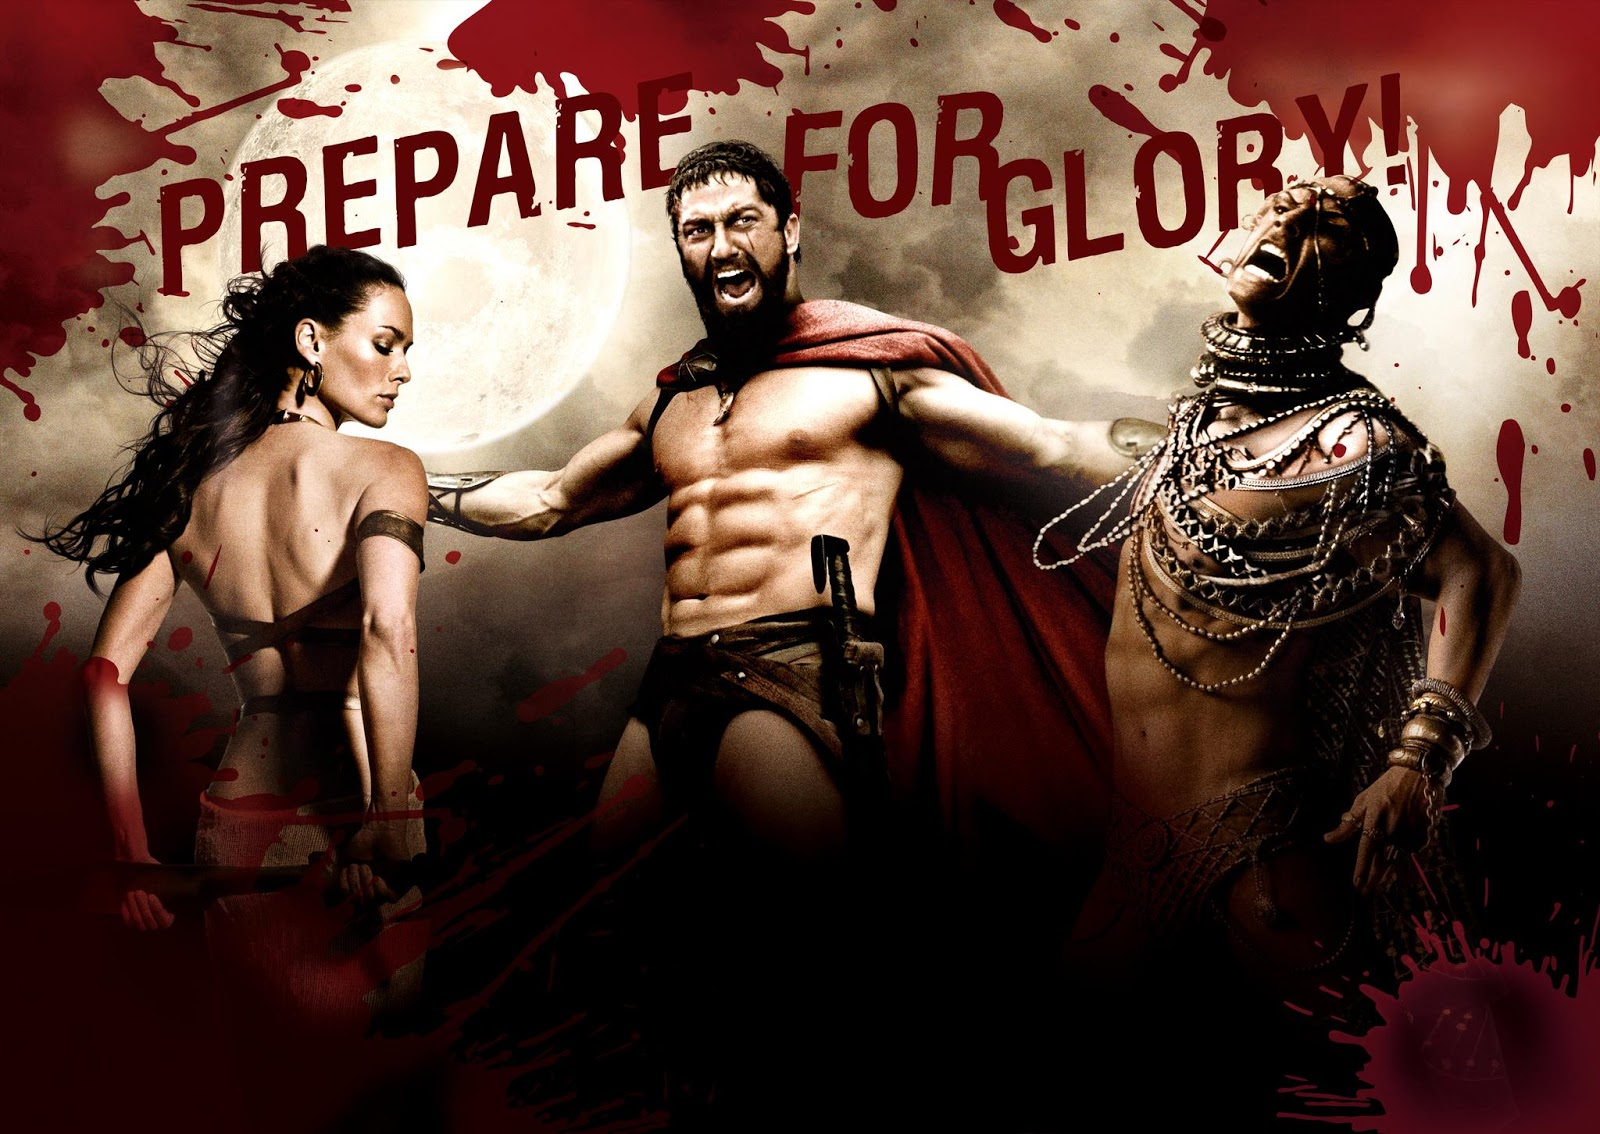 300 [2006] [west] [usa] [bluray 720p] [ysteam] [1000mb] [google